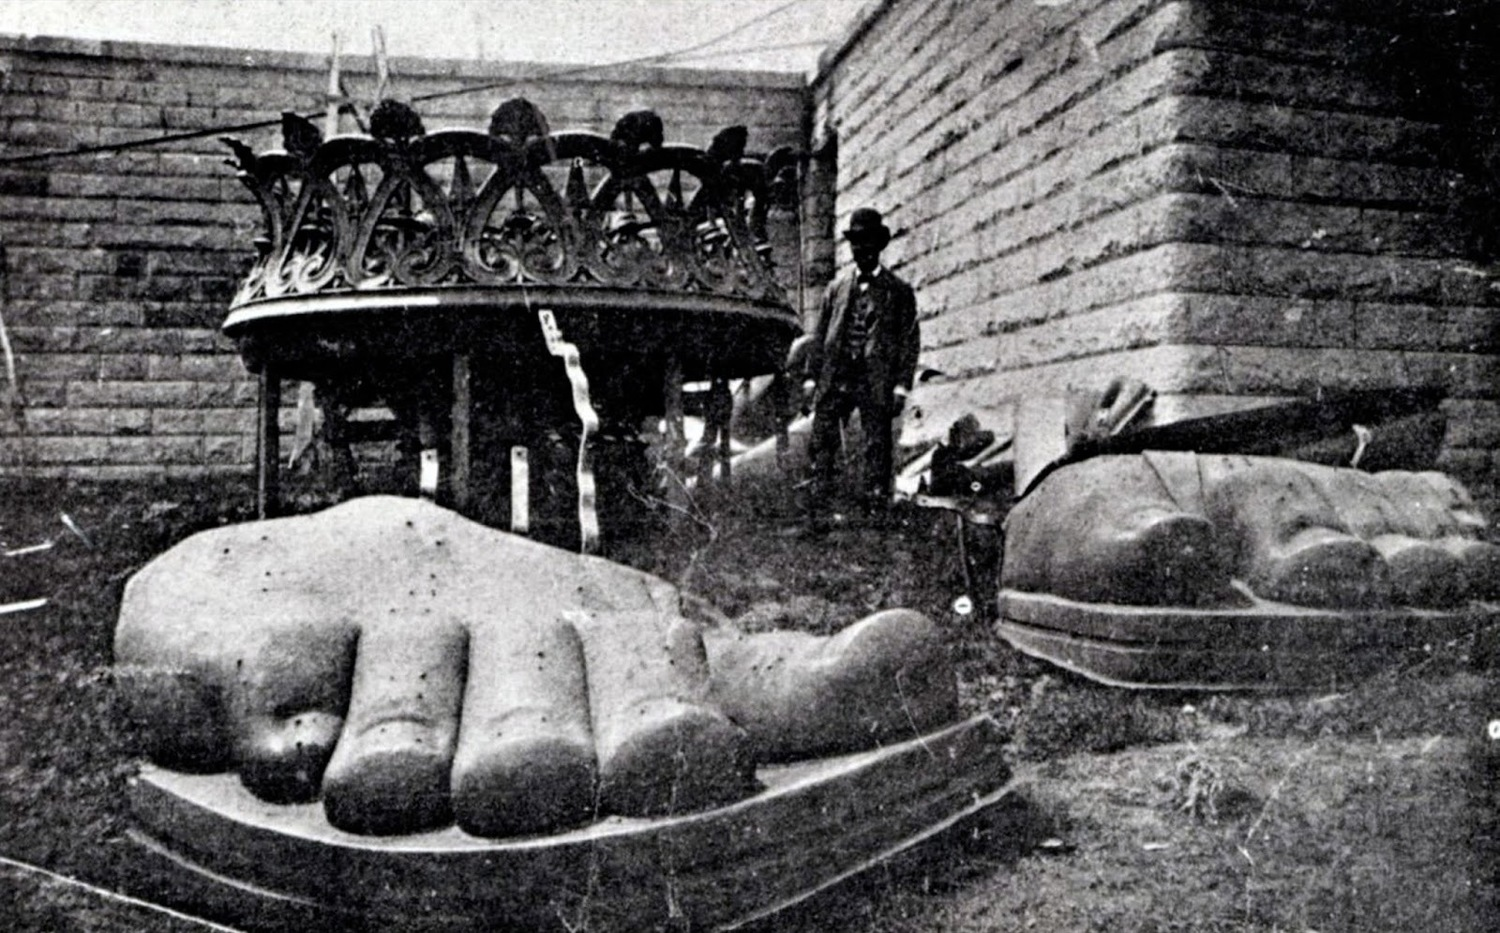 The feet of the Statue of Liberty arrive on Liberty Island in 1885.